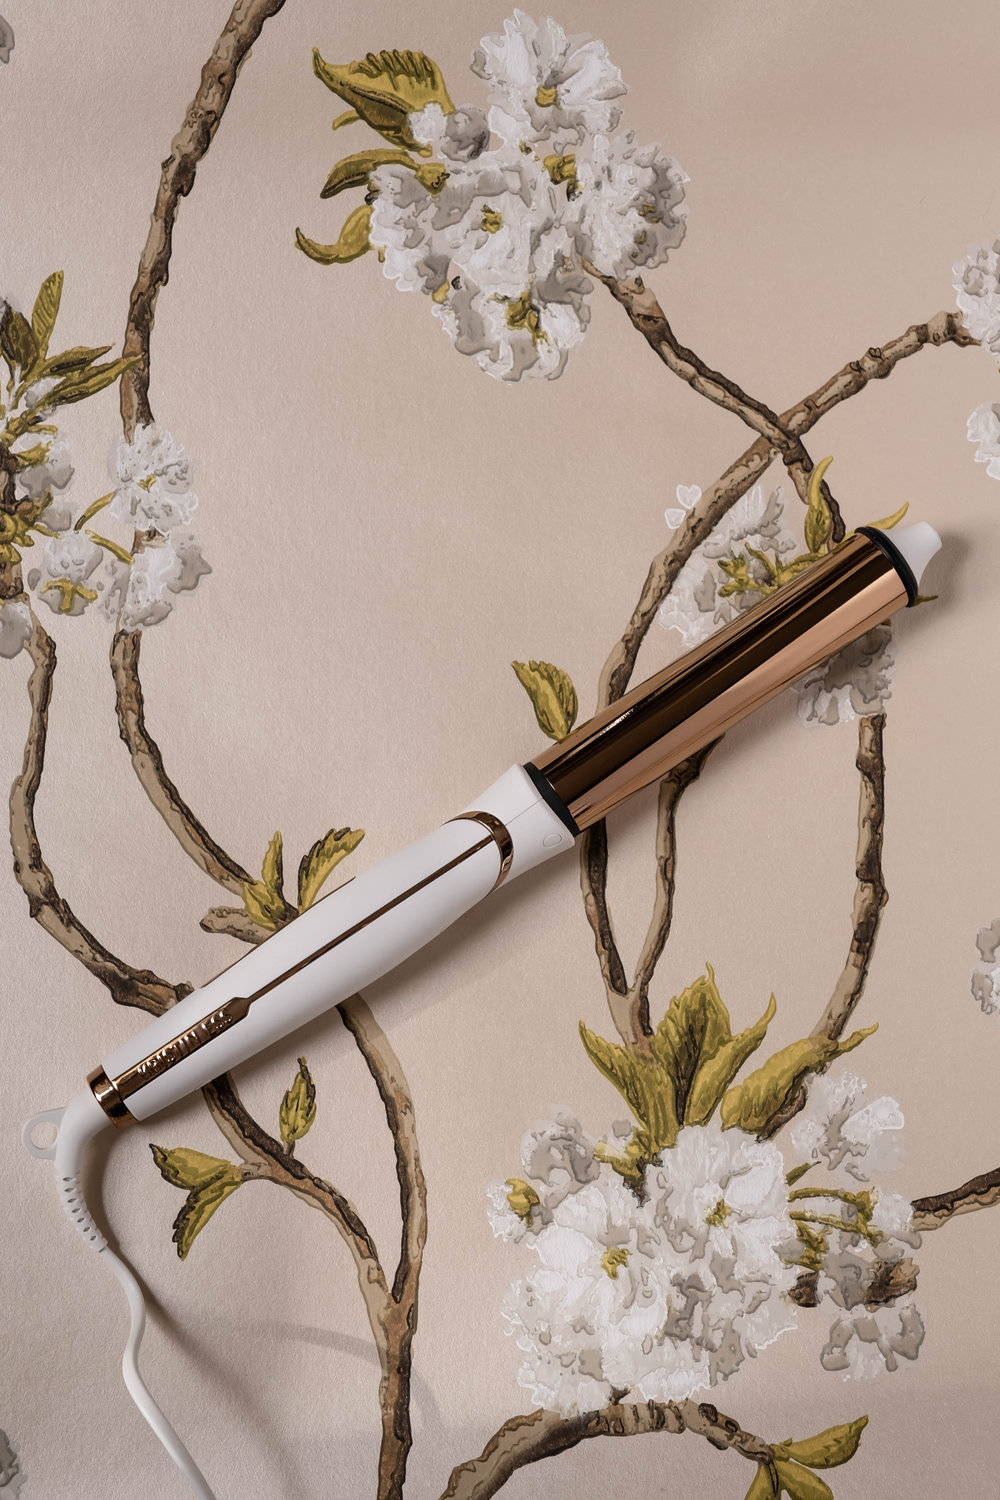 ROSE & IVY A Curling Iron That Makes Curling Your Hair Easy (Really!) by Kristin Ess